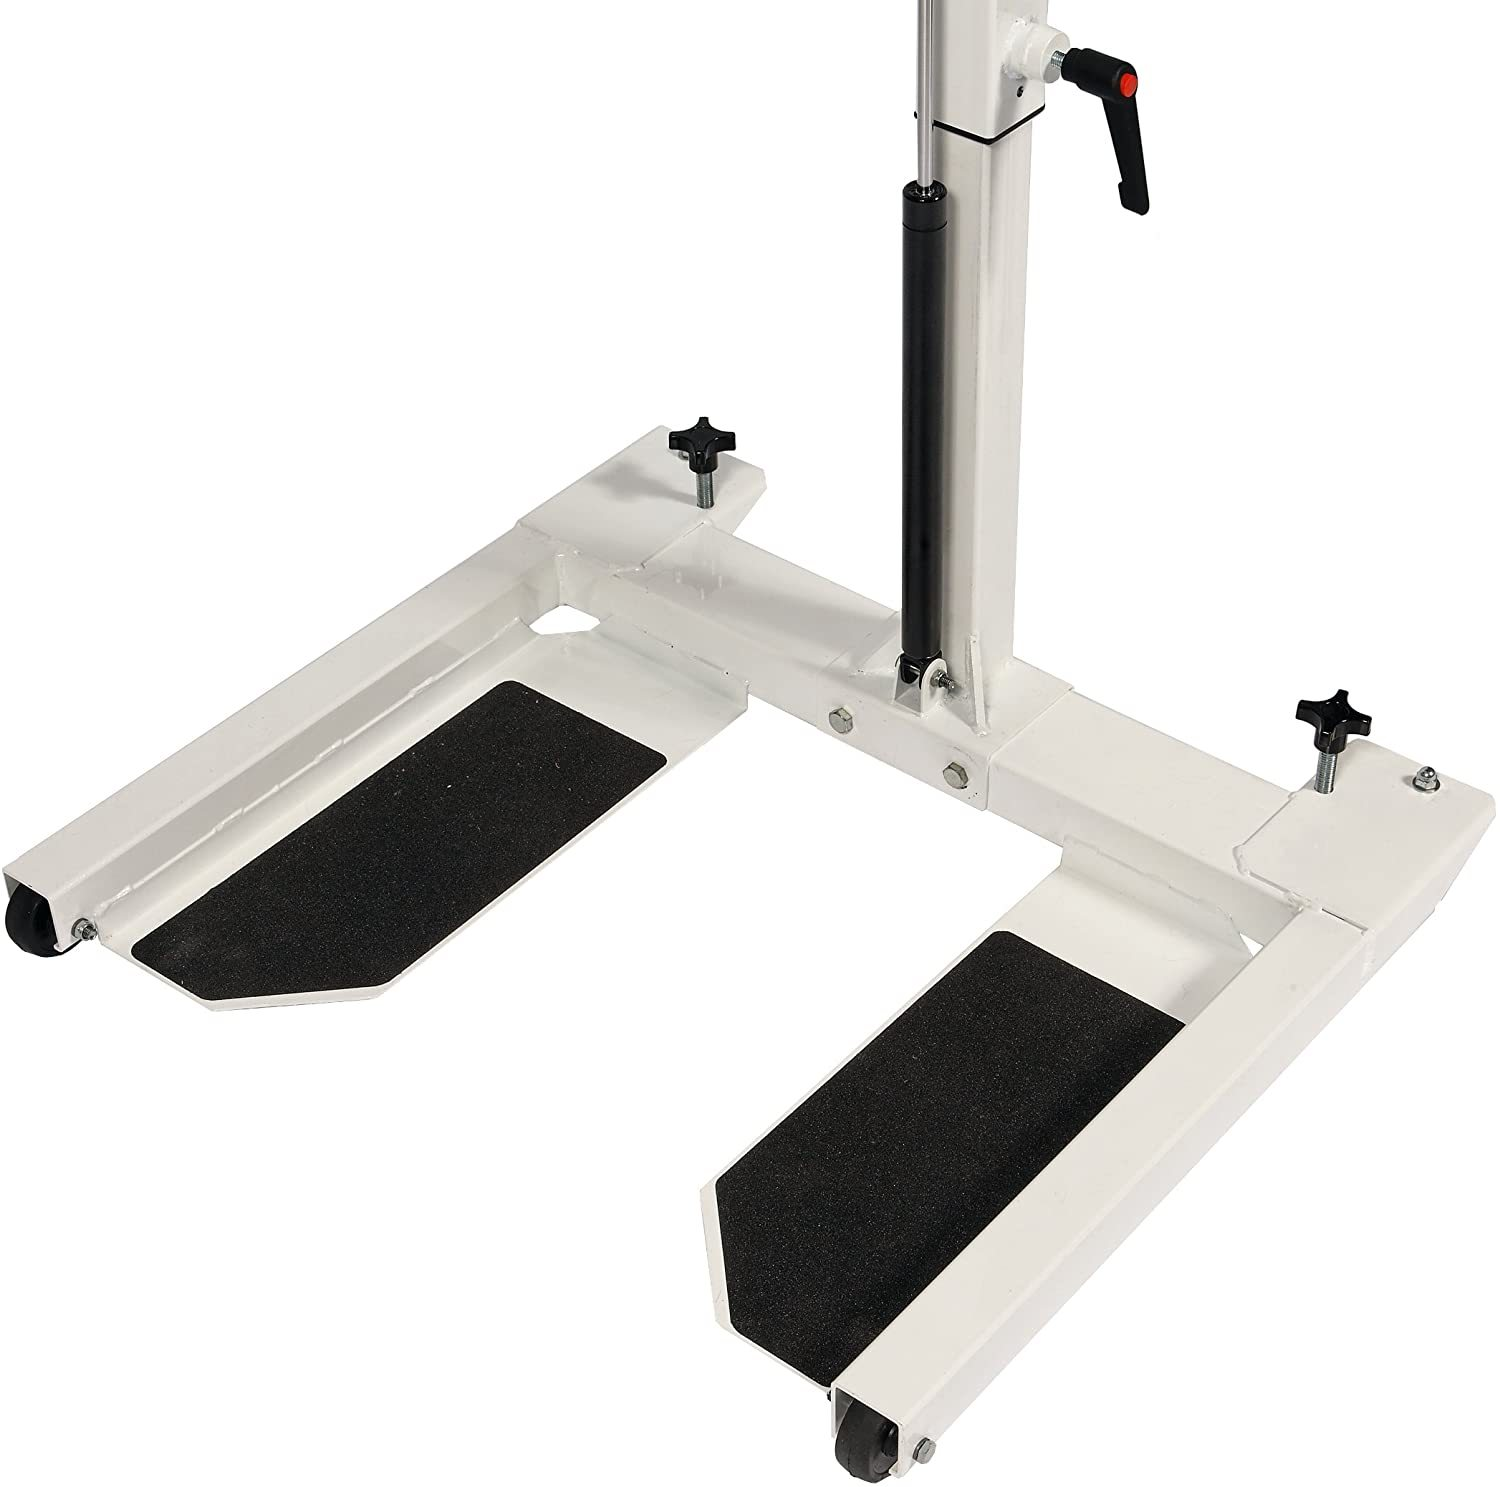 HCI Fitness Adjustable Height Upper Body Ergonometer Table